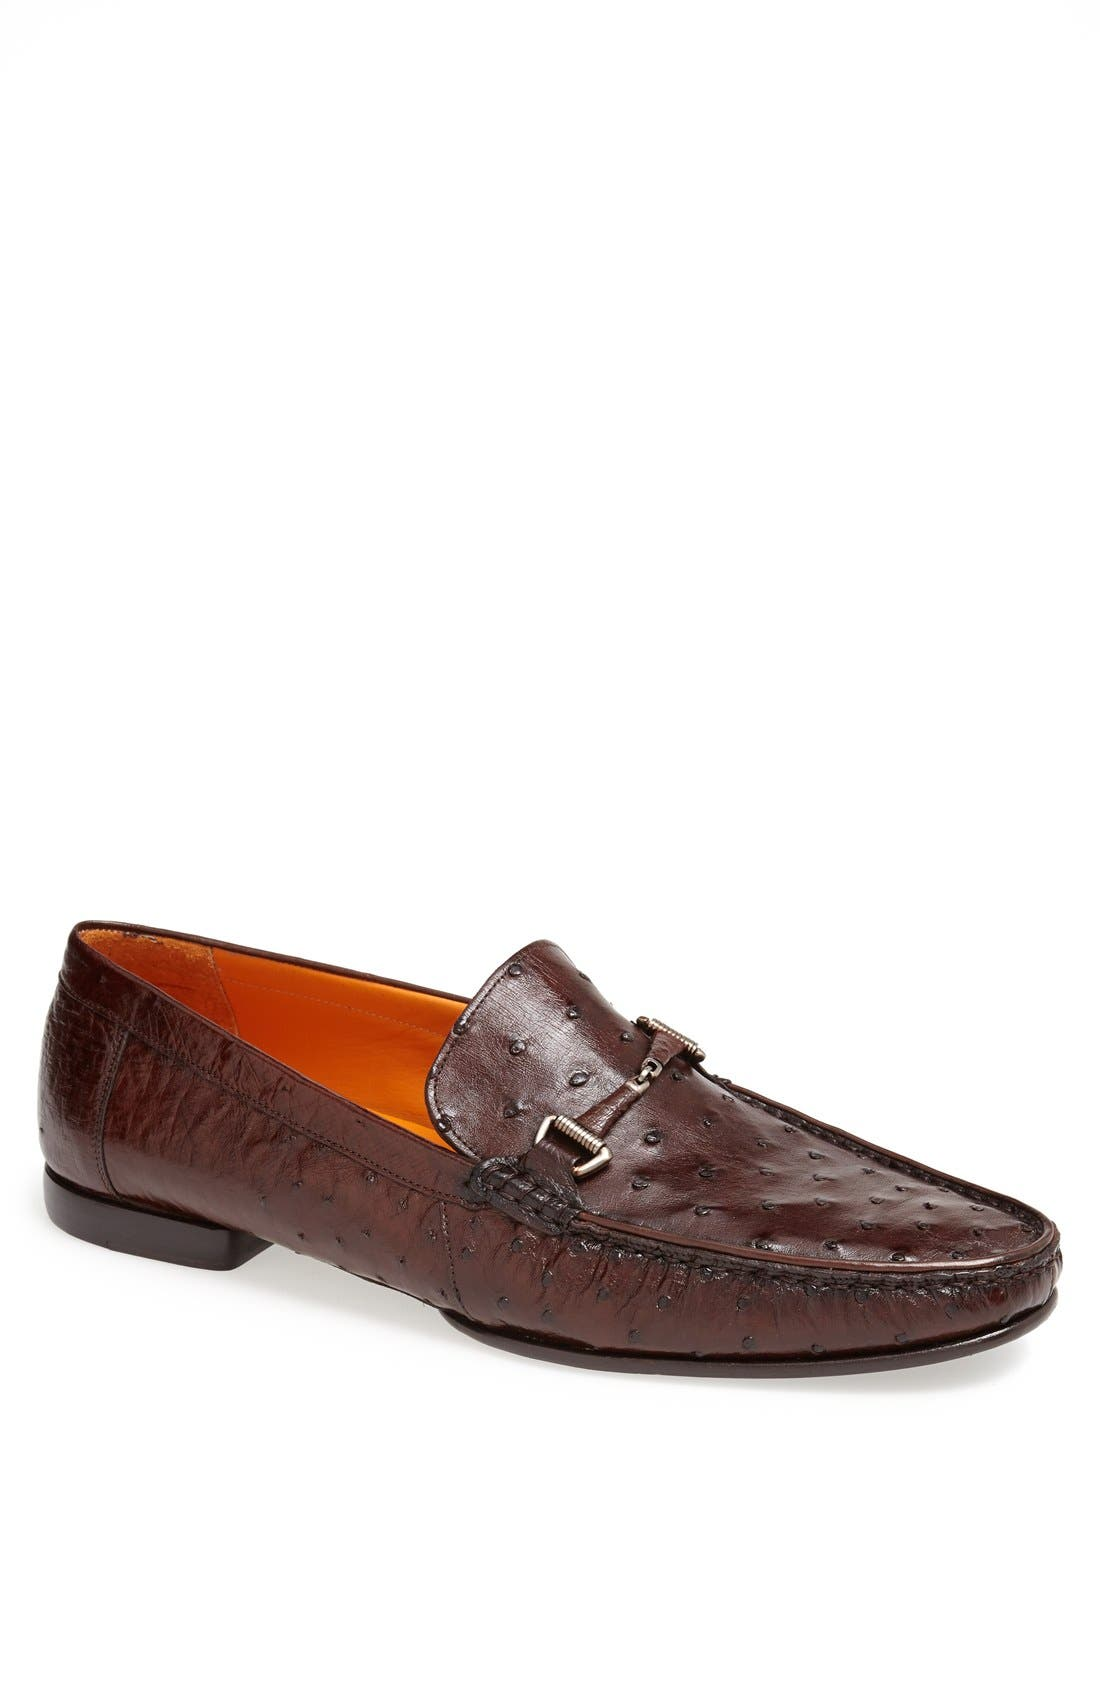 MEZLAN Vittorio Ostrich Leather Bit Loafer